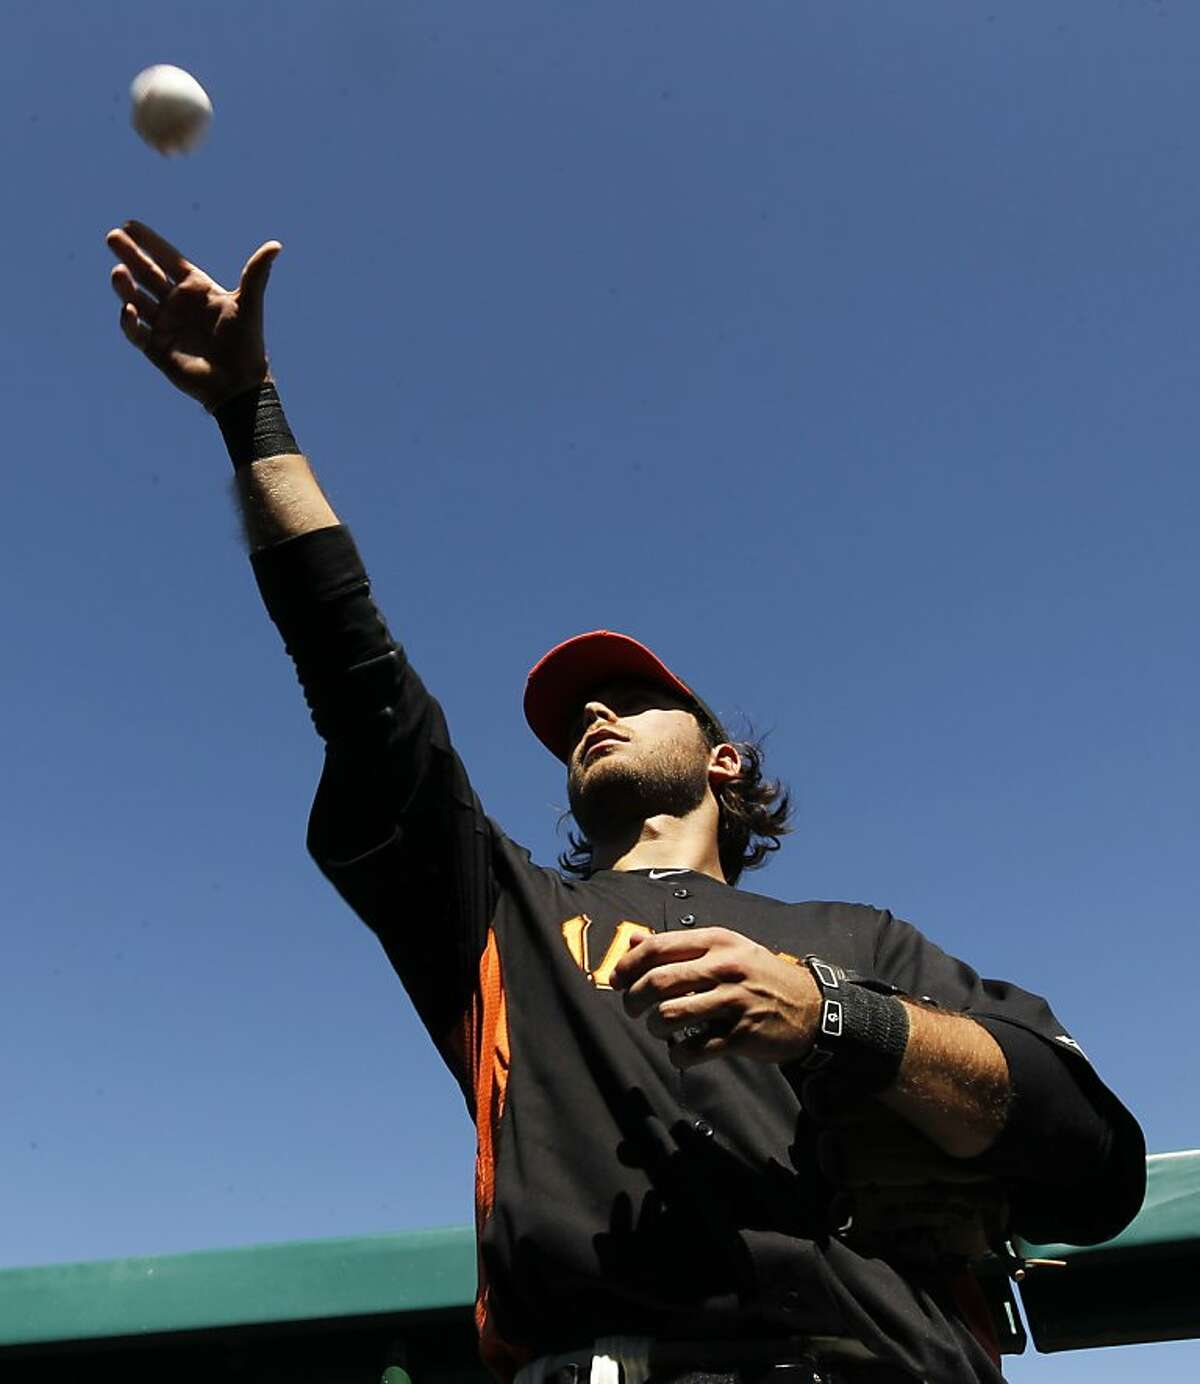 Brandon Crawford tosses an autographed baseball back to a fan before the San Francisco Giants Cactus League spring training opener against the Arizona Diamondbacks in Scottsdale, Ariz. on Saturday, March 3, 2012.